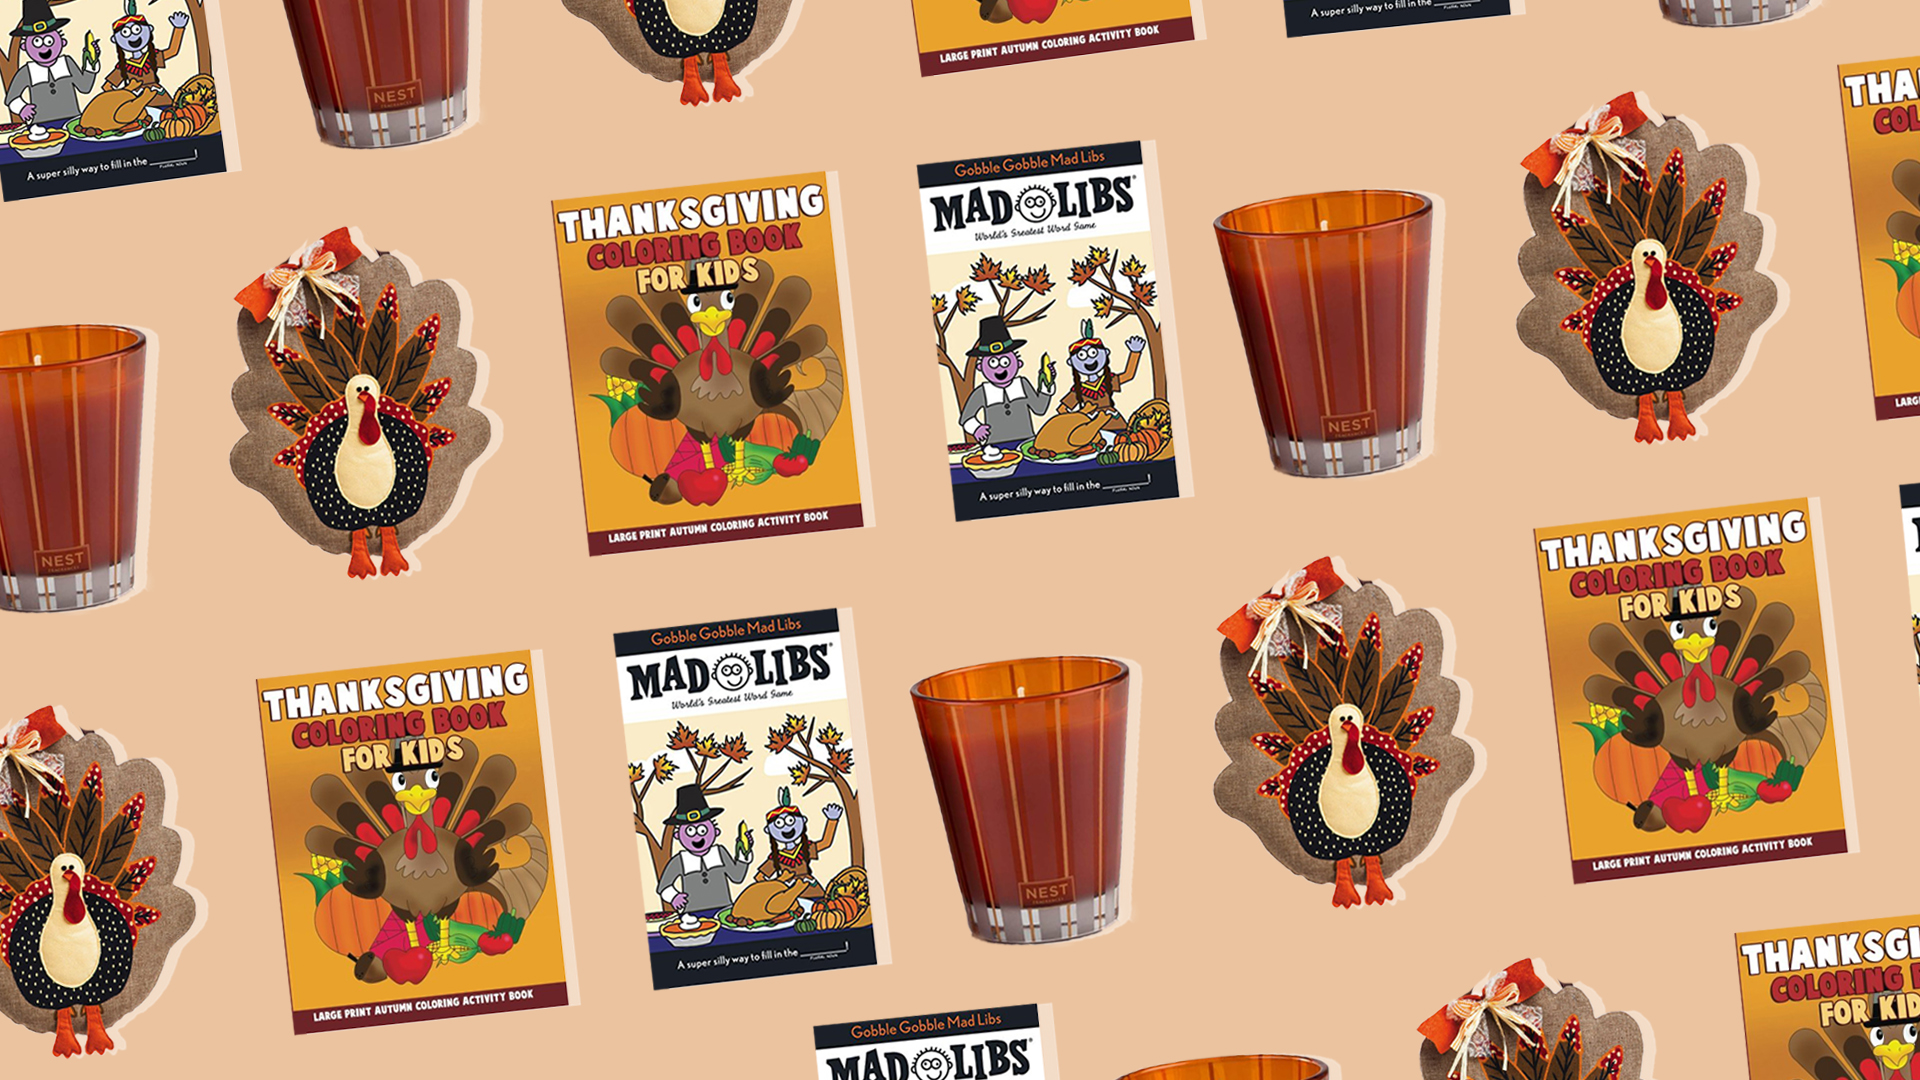 21 of the best Thanksgiving decor, host gifts and kids toys